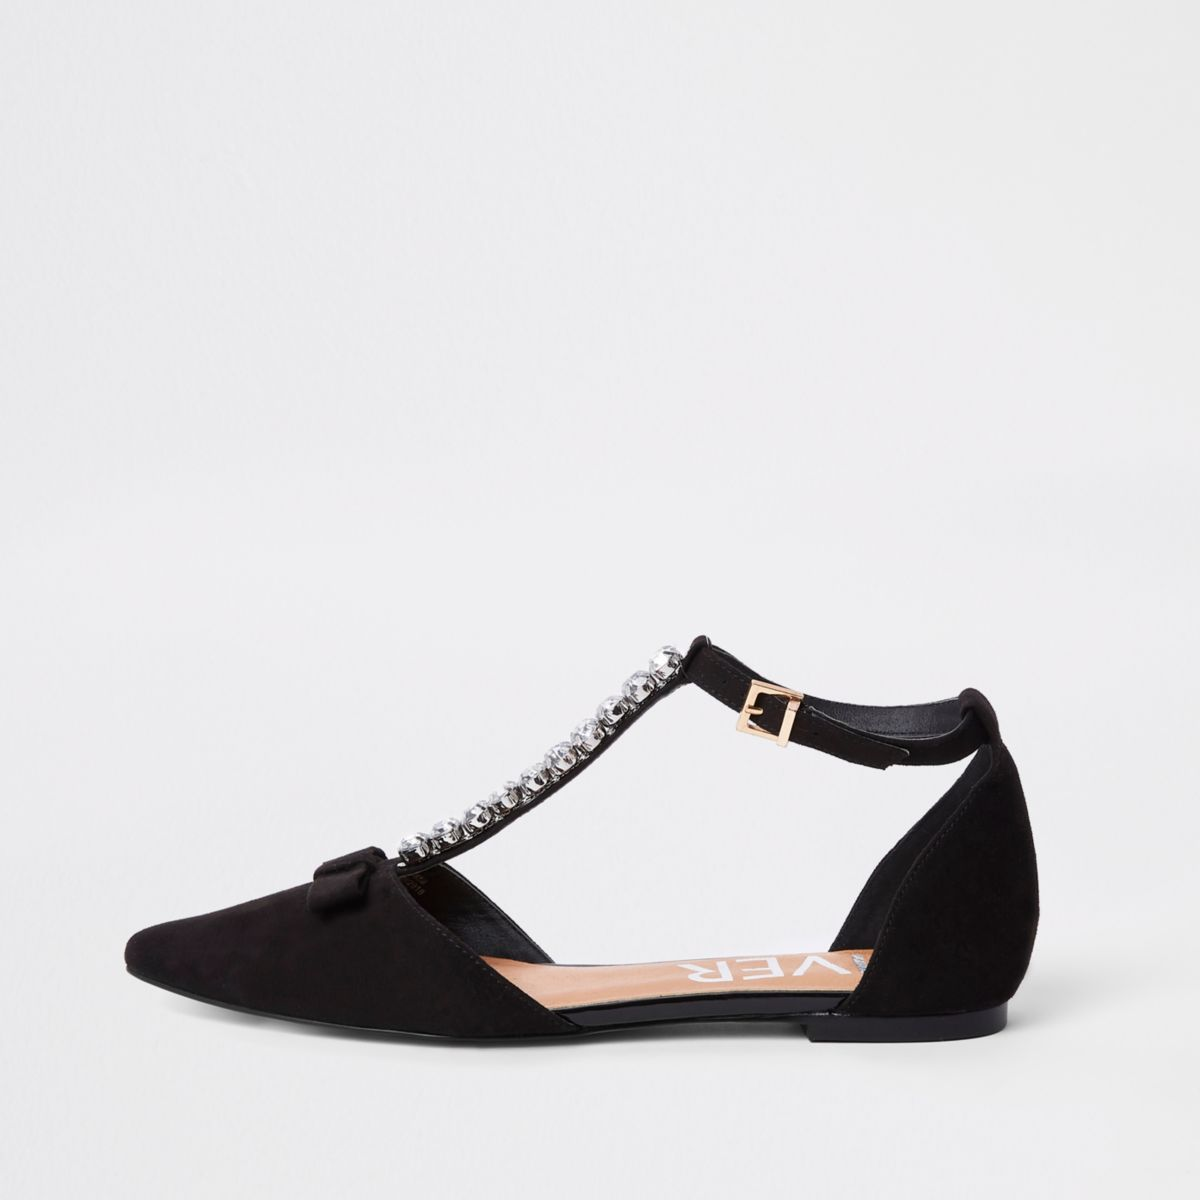 Black jewel pointed strappy shoes